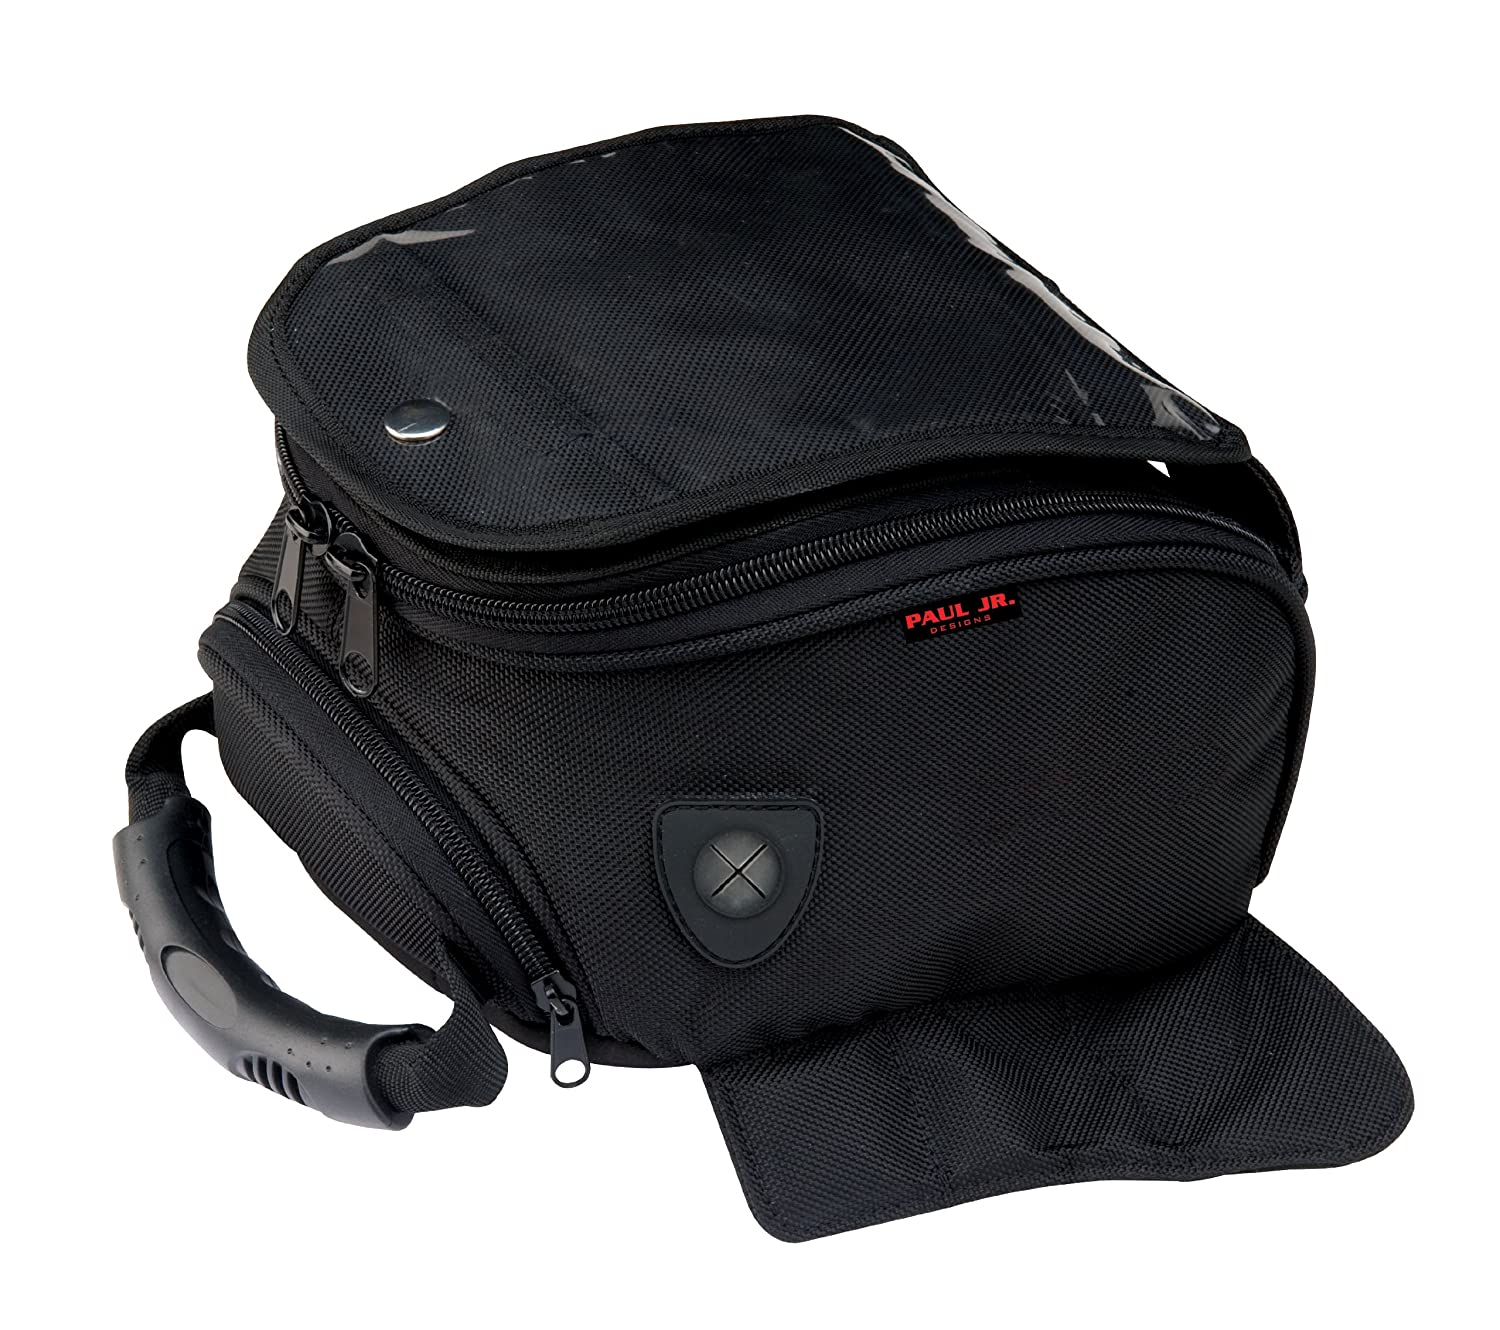 Amazon.com: Coleman Magnetic Motorcycle Tank Bag: Sports & Outdoors